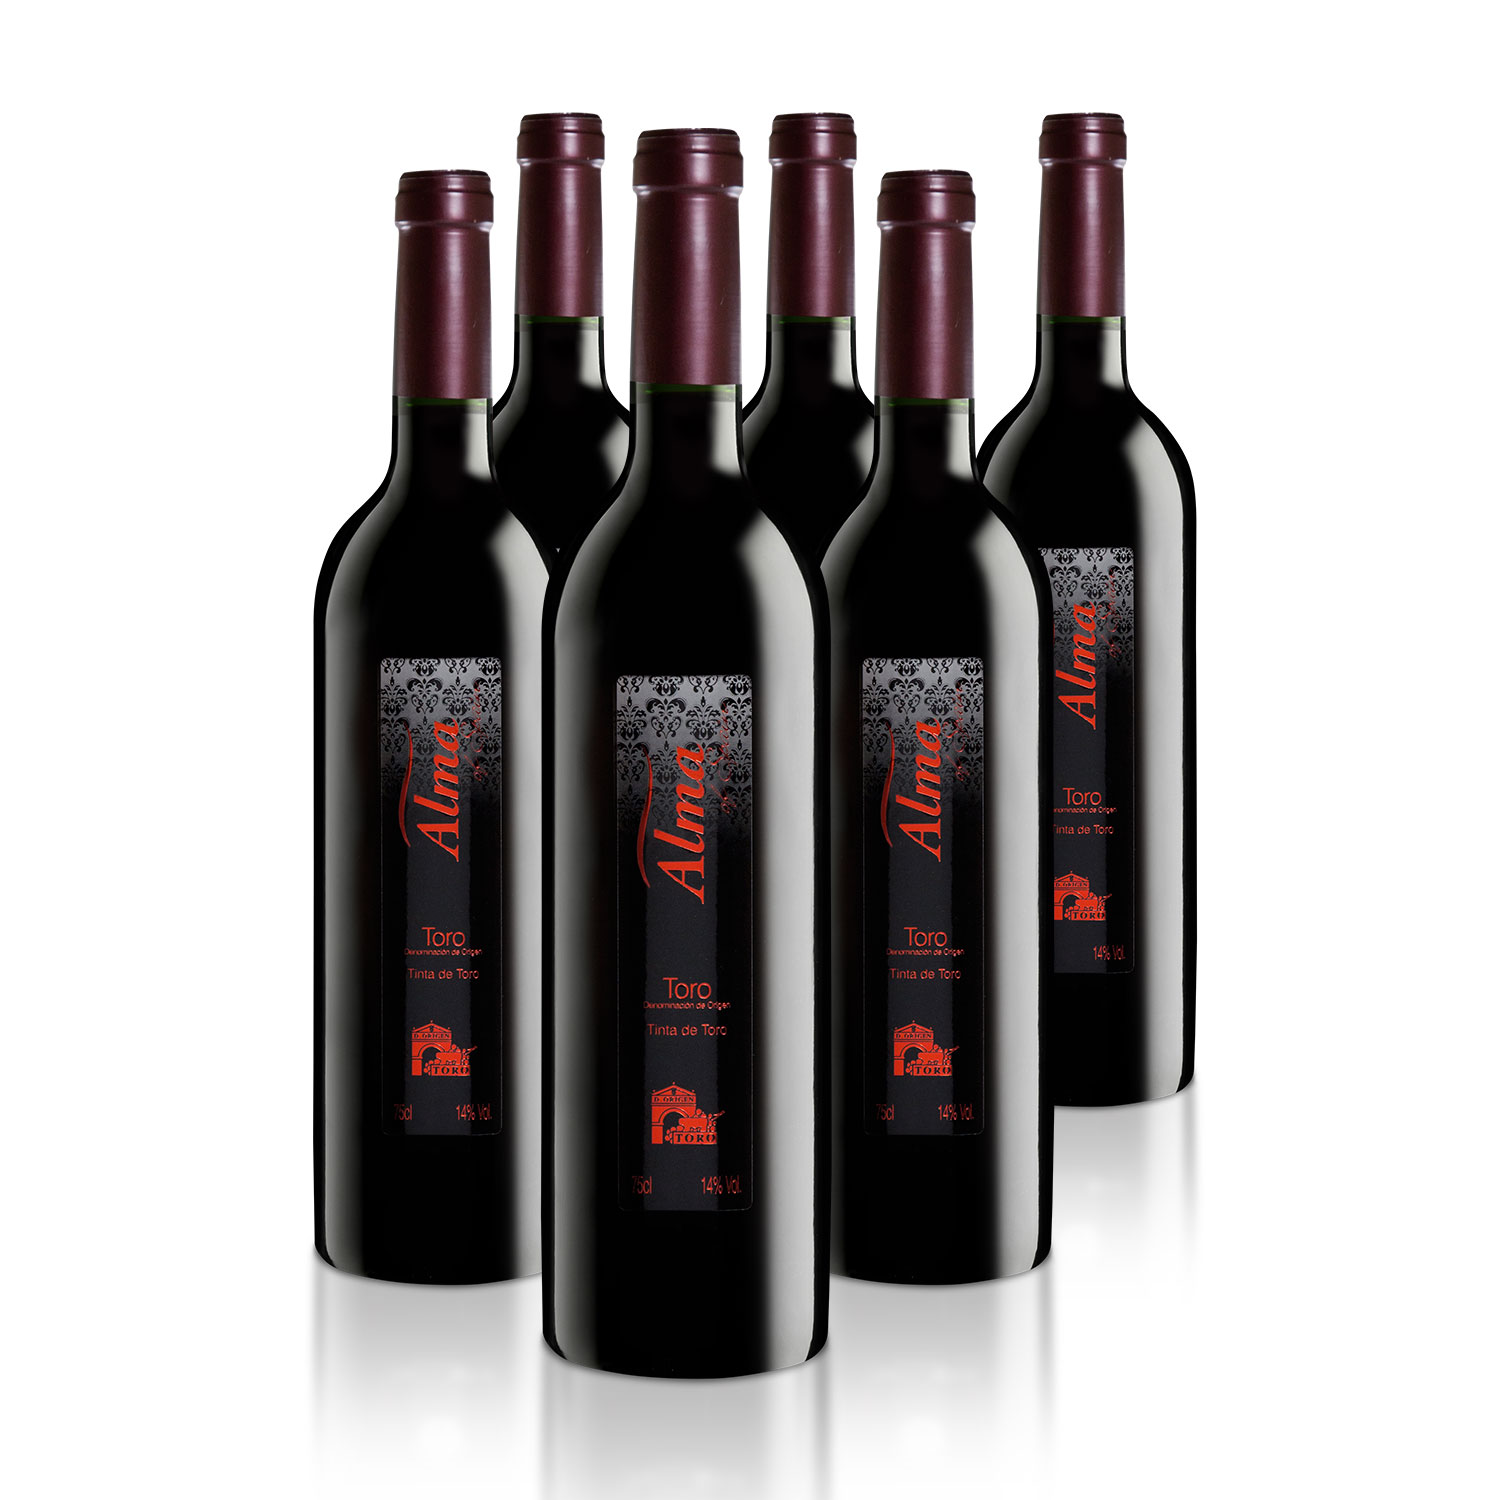 Vino Tinta de Toro, pack de 6 botellas. Alma of Spain